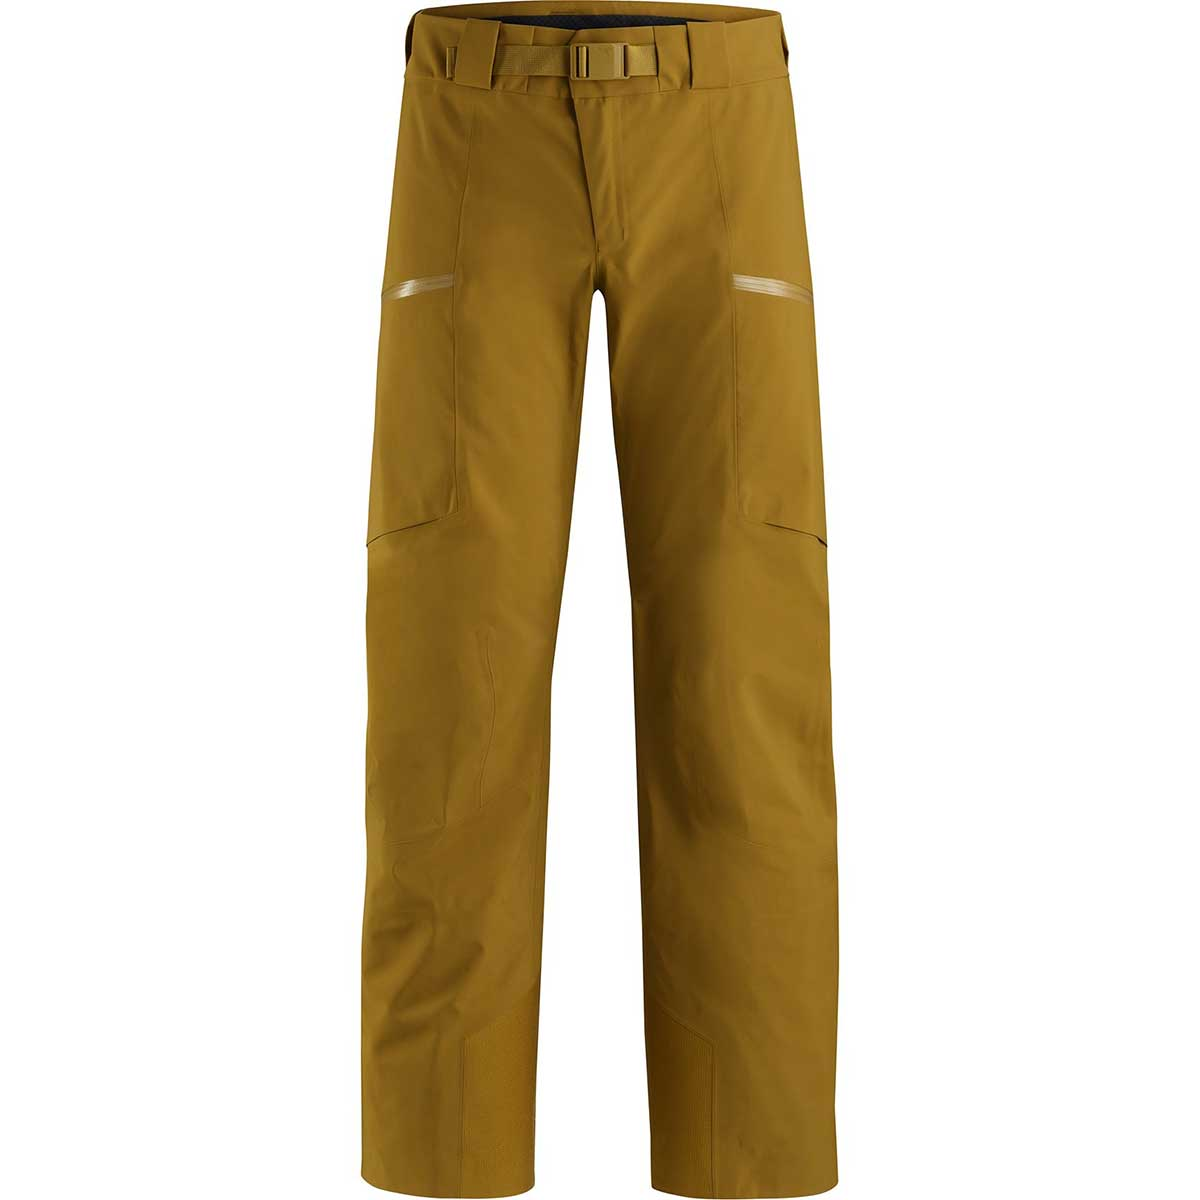 Arcteryx men's Sabre AR Pant in Yukon front view